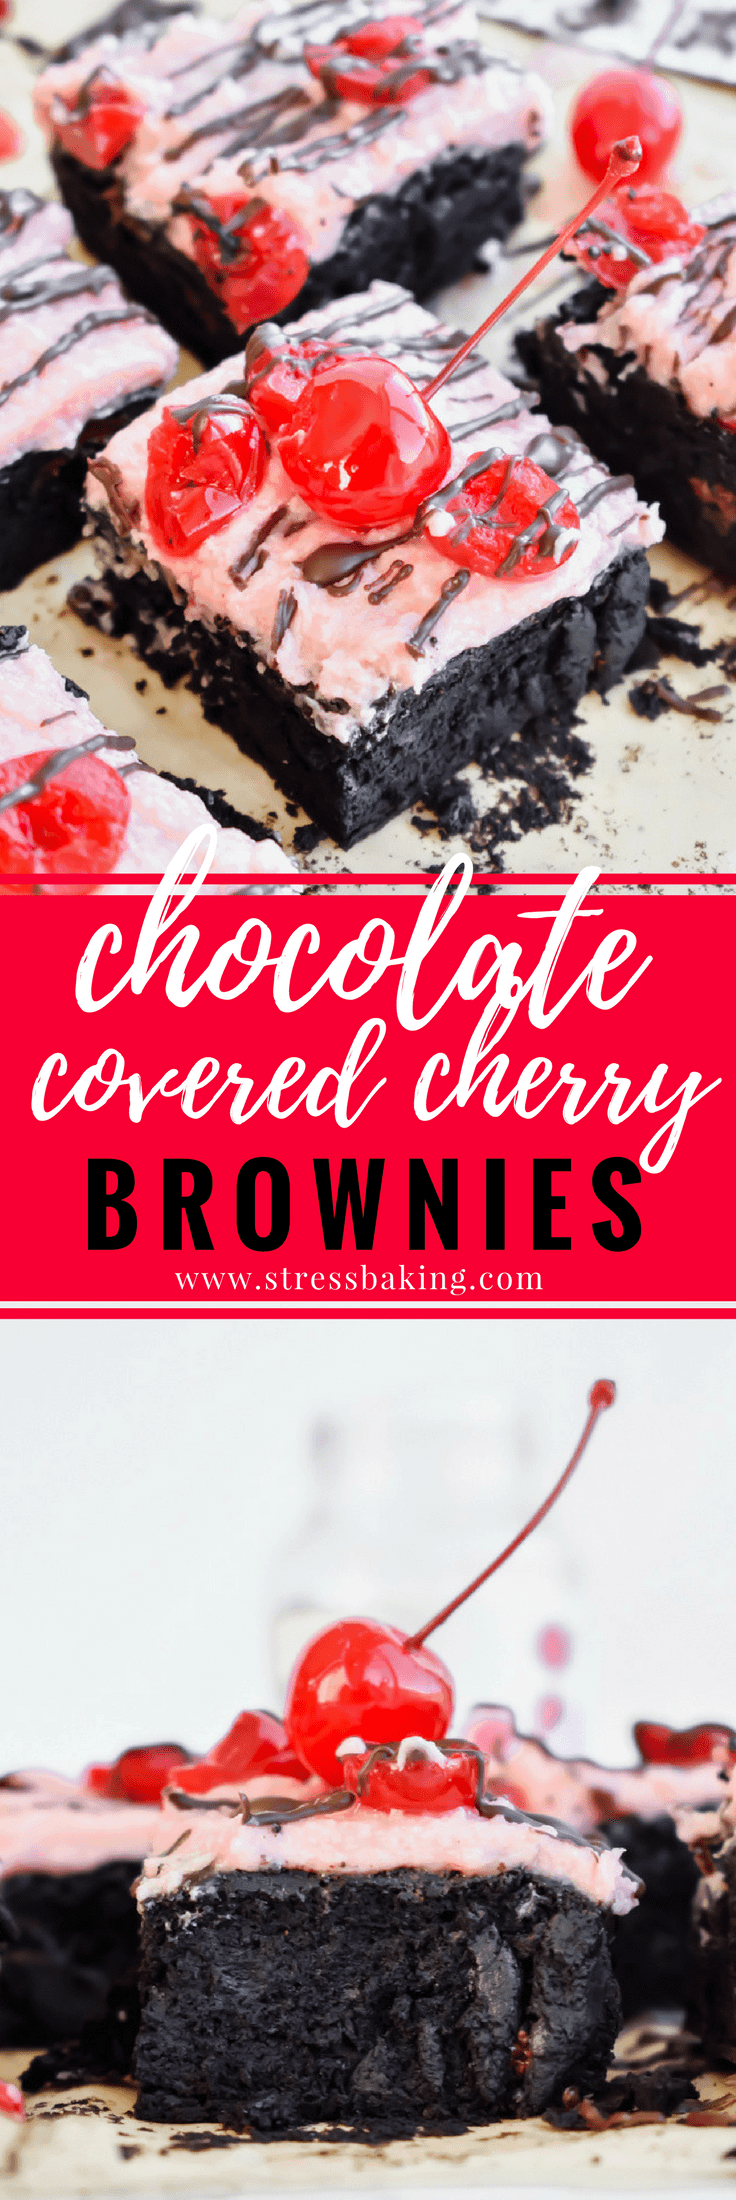 Small Batch Chocolate Covered Cherry Brownies: Rich, super fudgy dark chocolate brownies are topped with a sweet maraschino cherry buttercream frosting that tastes just like the filling of a chocolate covered cherry! | stressbaking.com #stressbaking #smallbatch #cherry #chocolate #brownies #darkchocolate #valentinesday #dessert #chocolatecoveredcherry